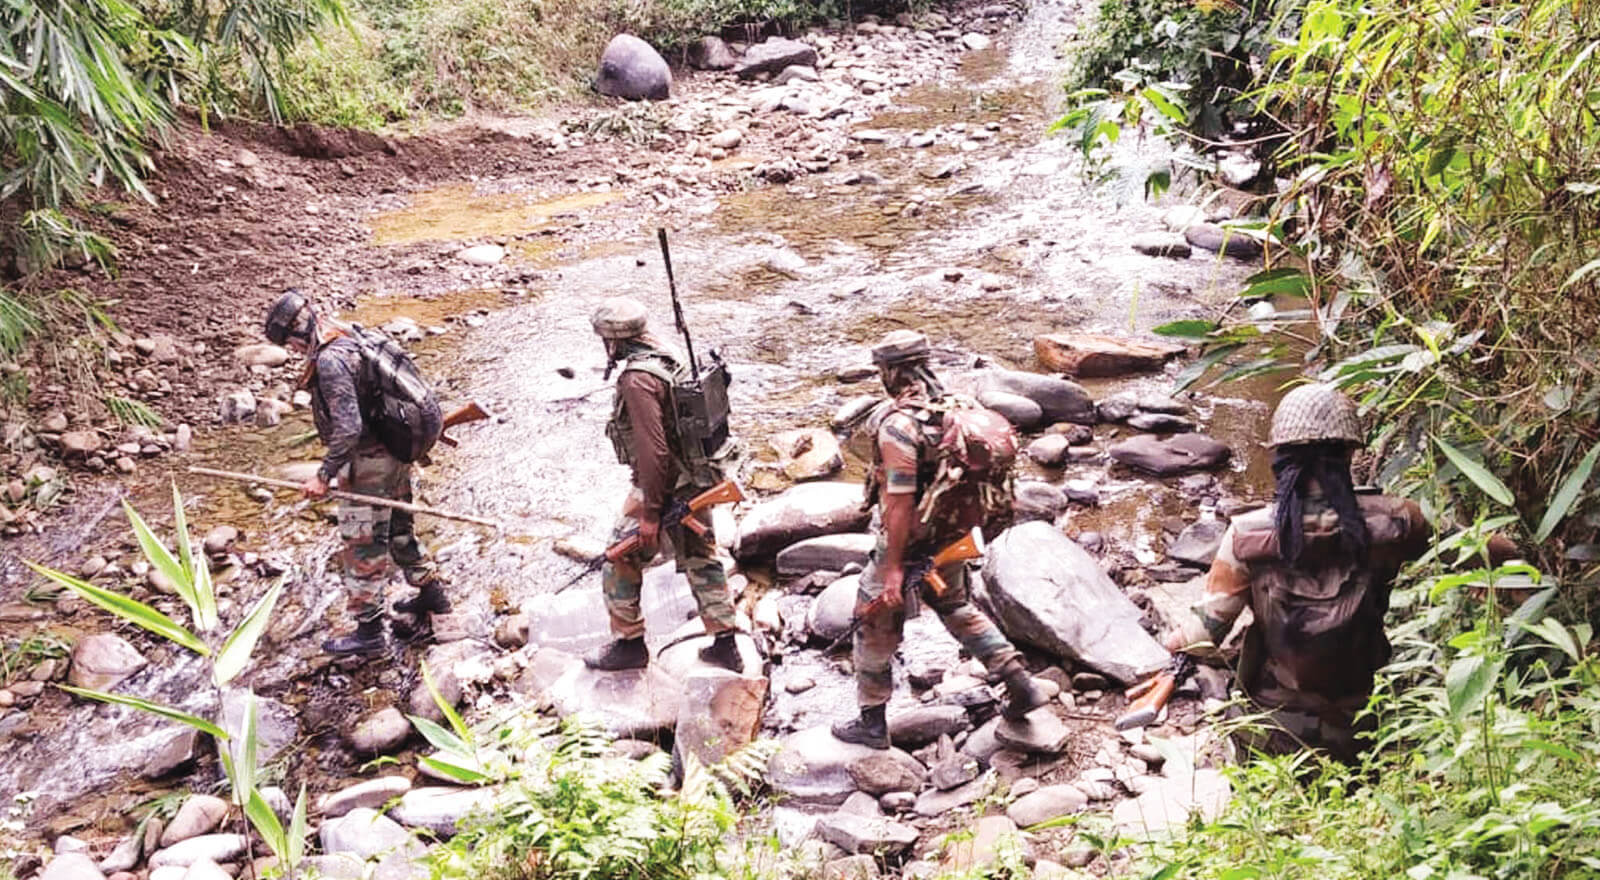 Massive combing operation launched by security forces to nab NSCN ultras who gunned down MLA Tirong Aboh